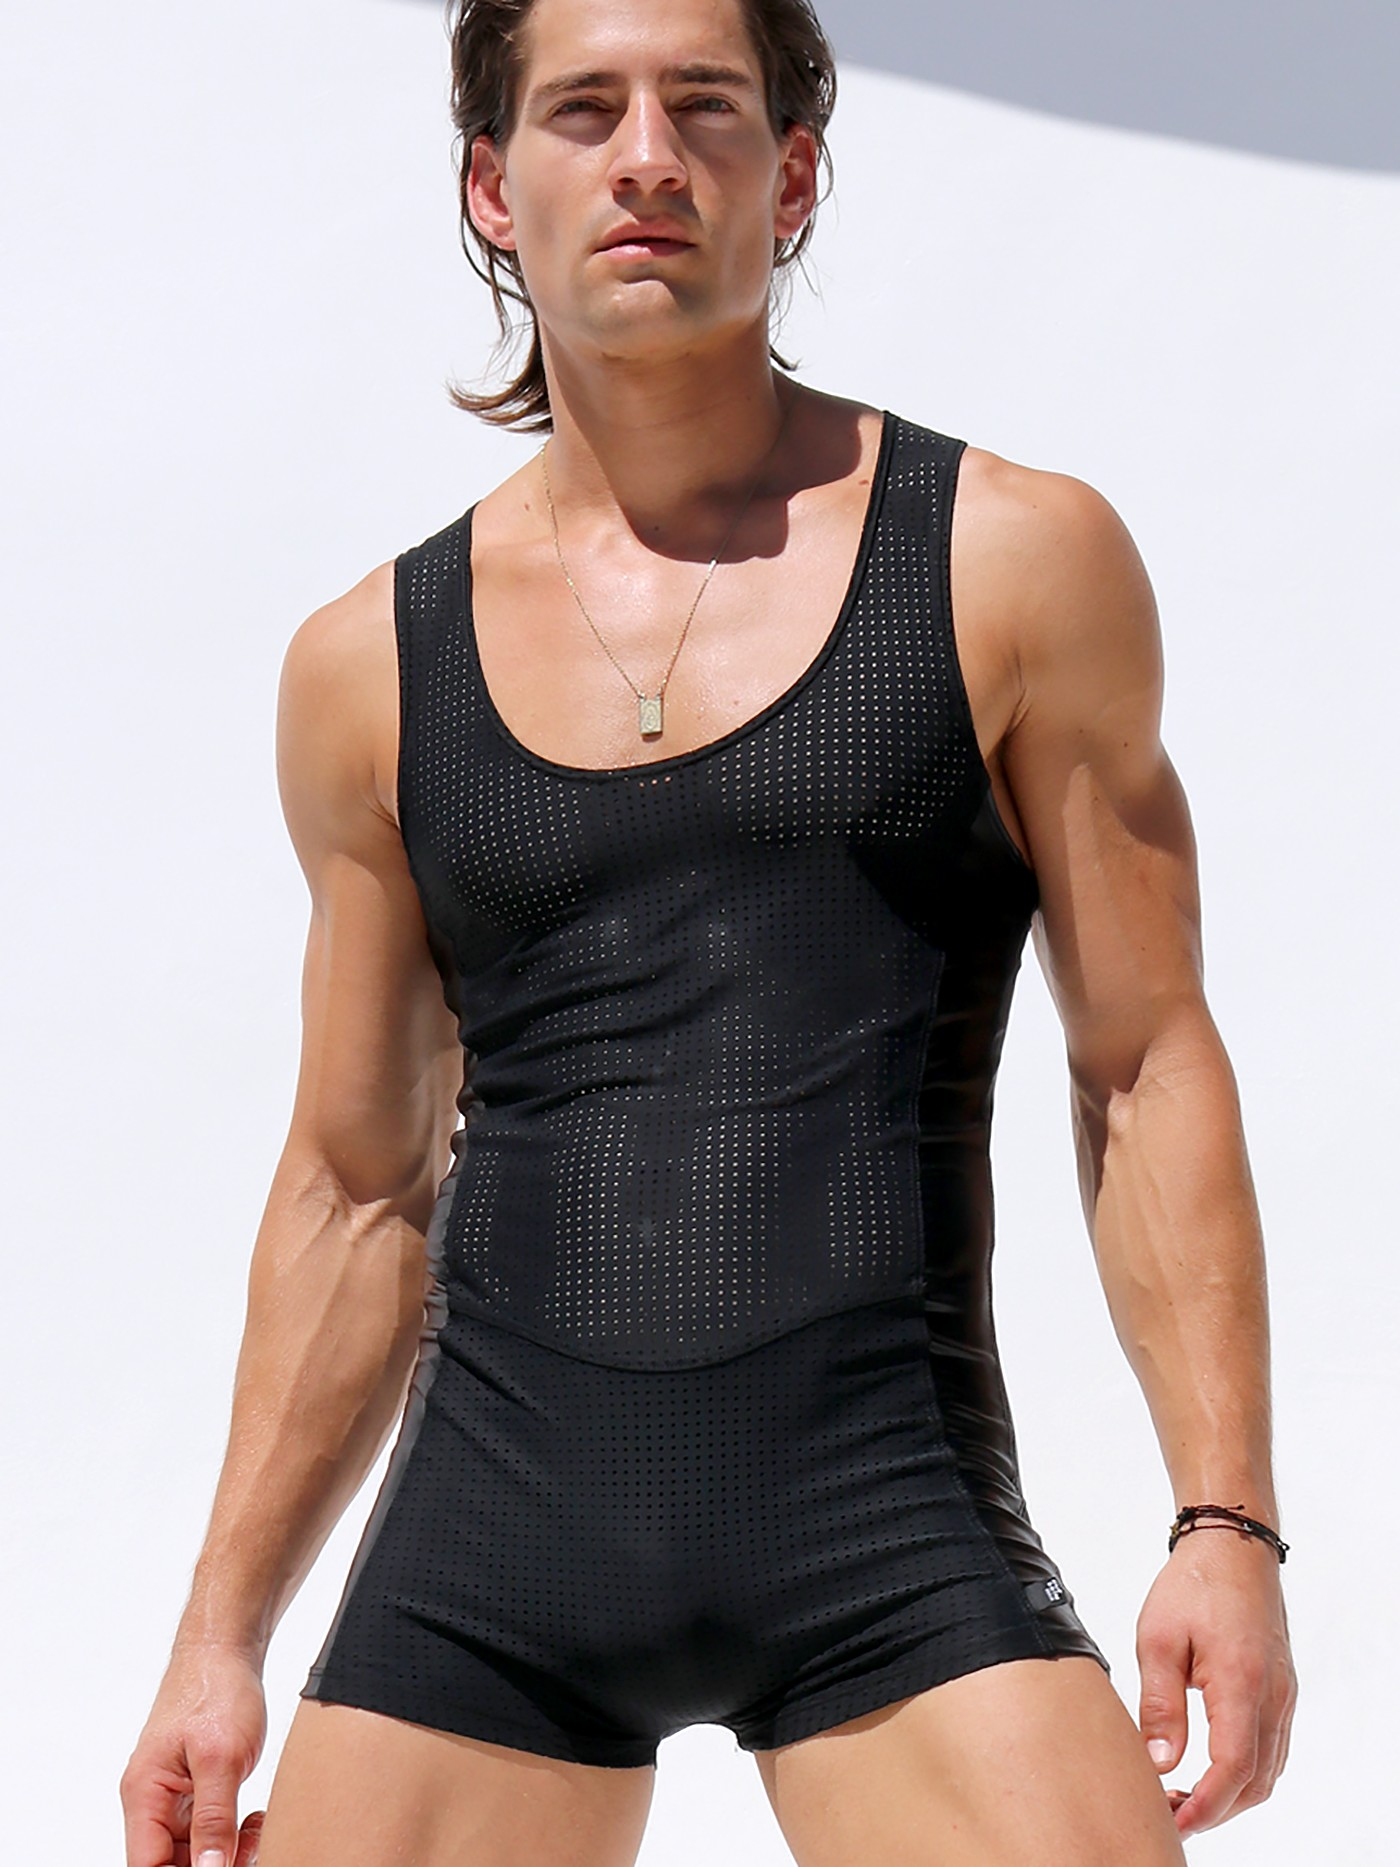 1cbb620cde Rufskin Crude Mesh Panel Bodysuit Black SL5809 at International Jock